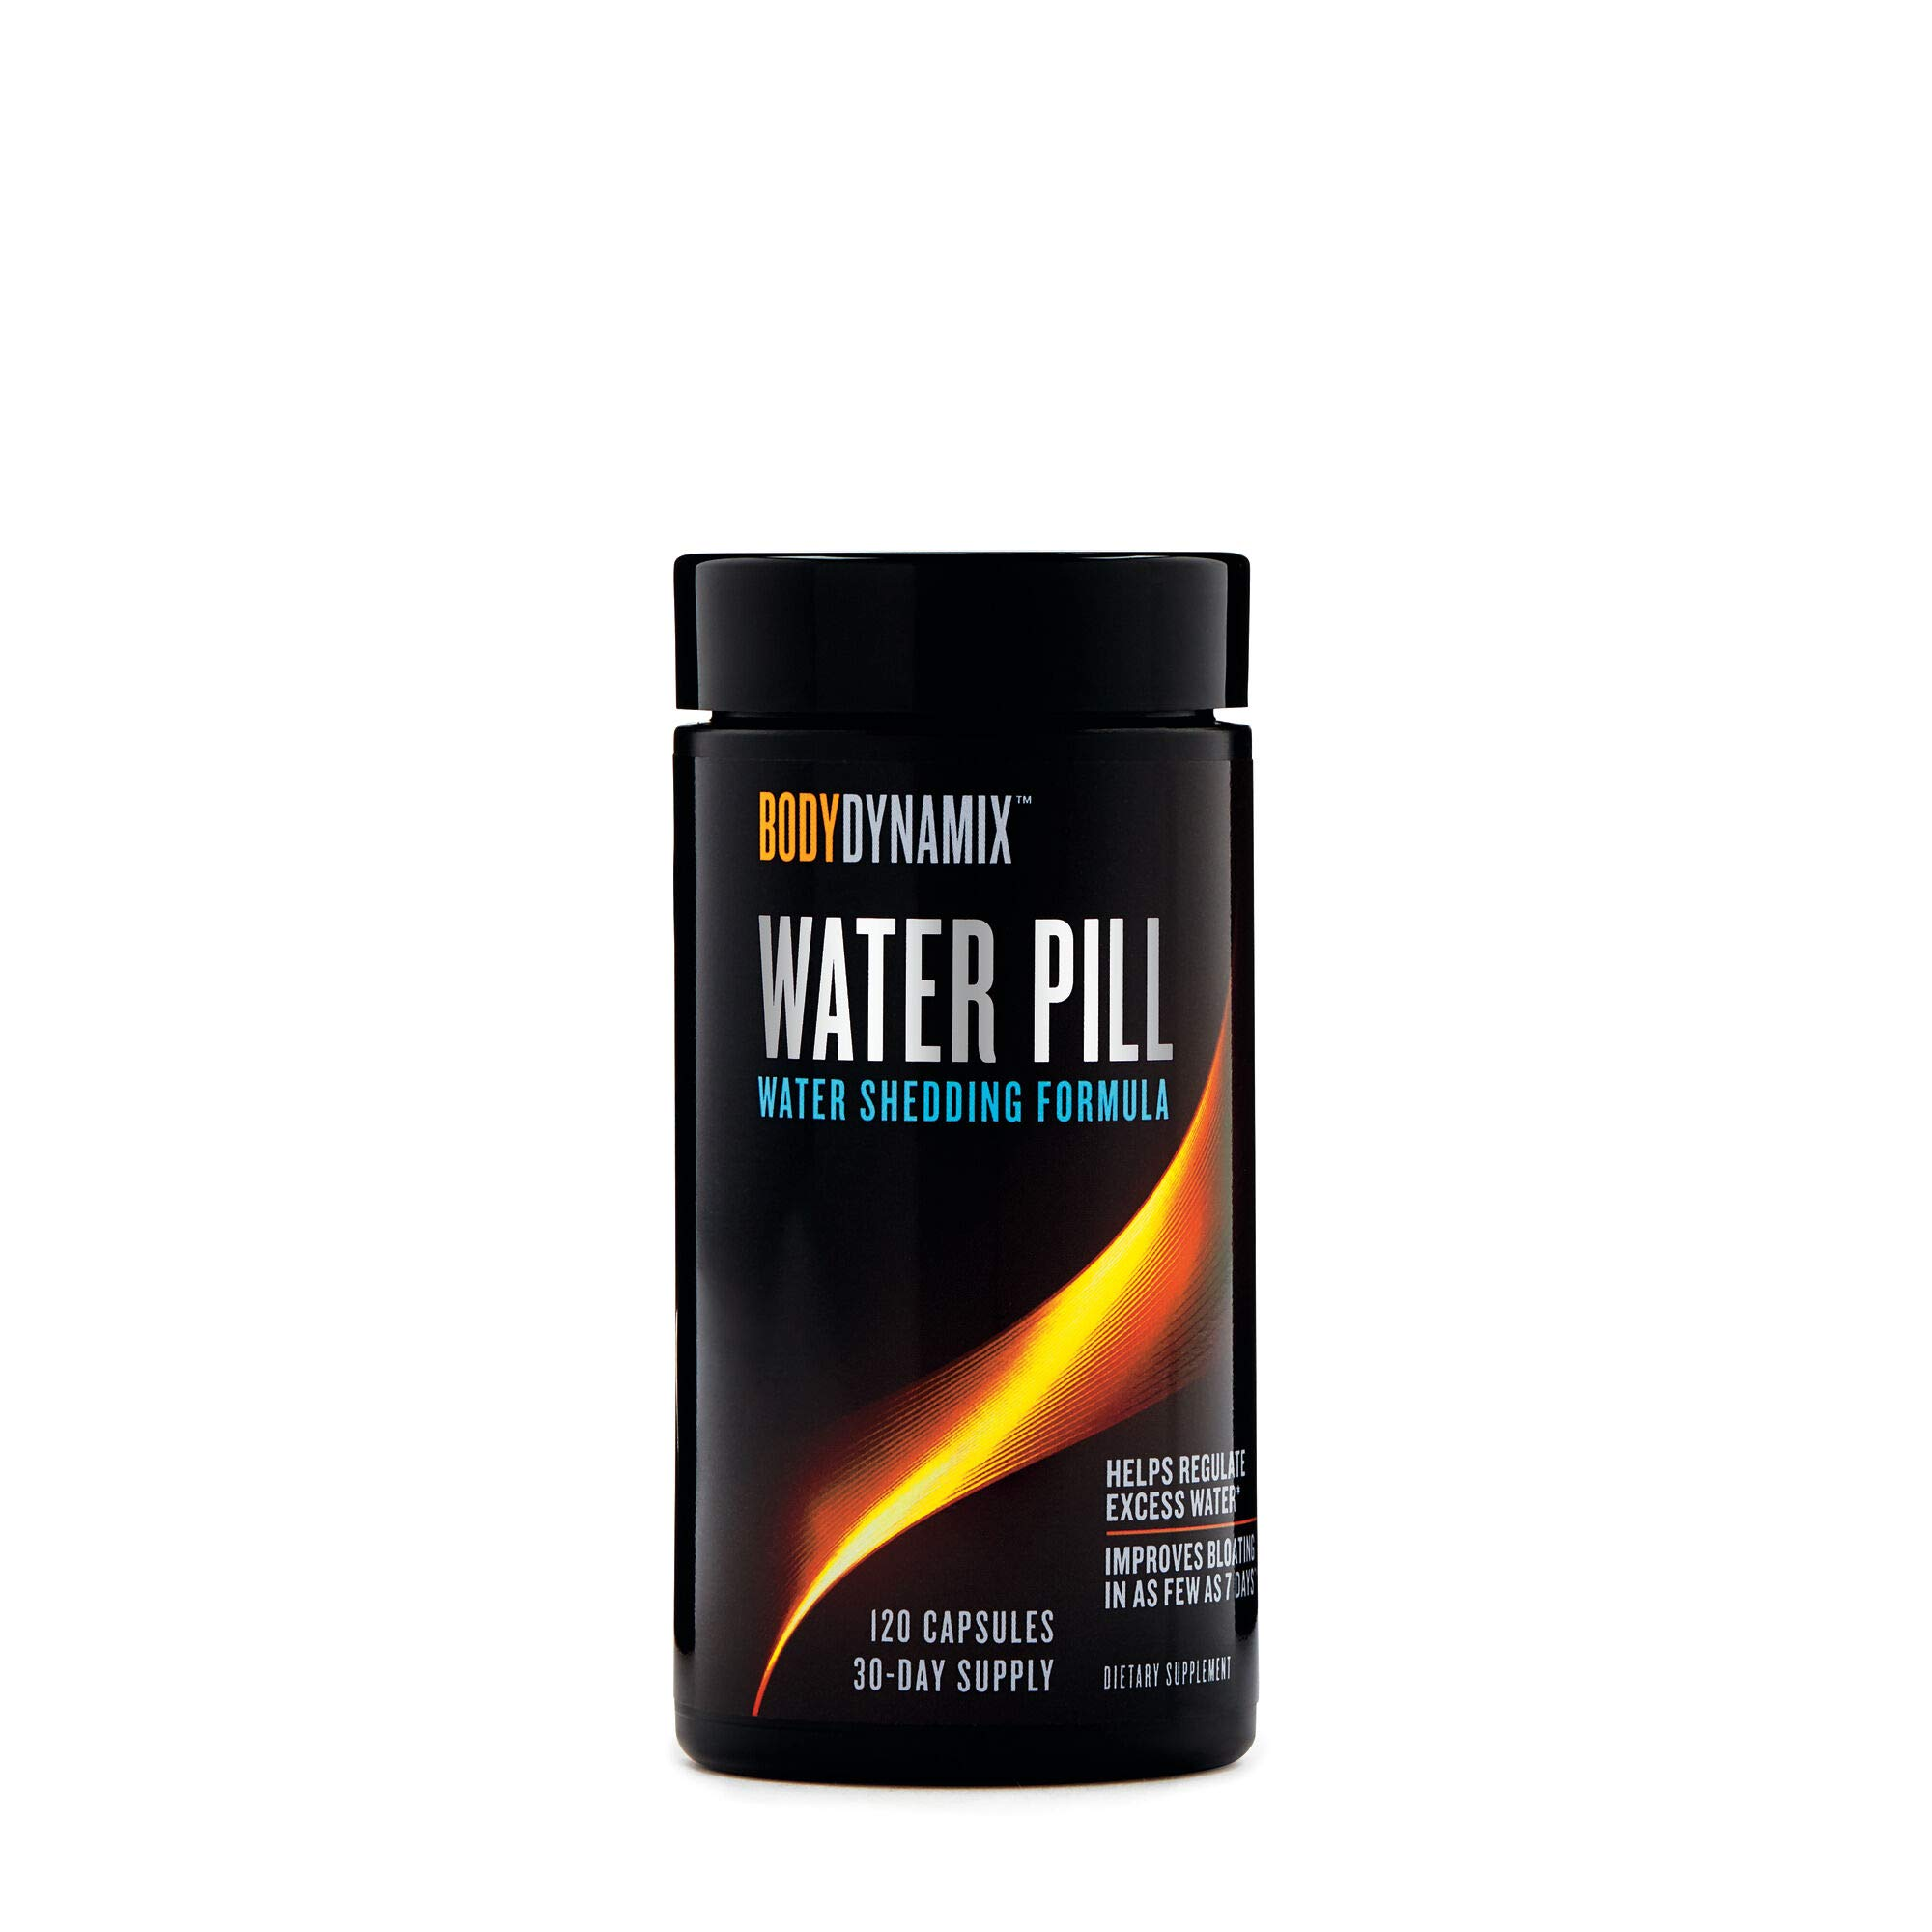 BodyDynamix Water Pill, 120 Capsules, Helps Regulate Water Balance by BodyDynamix